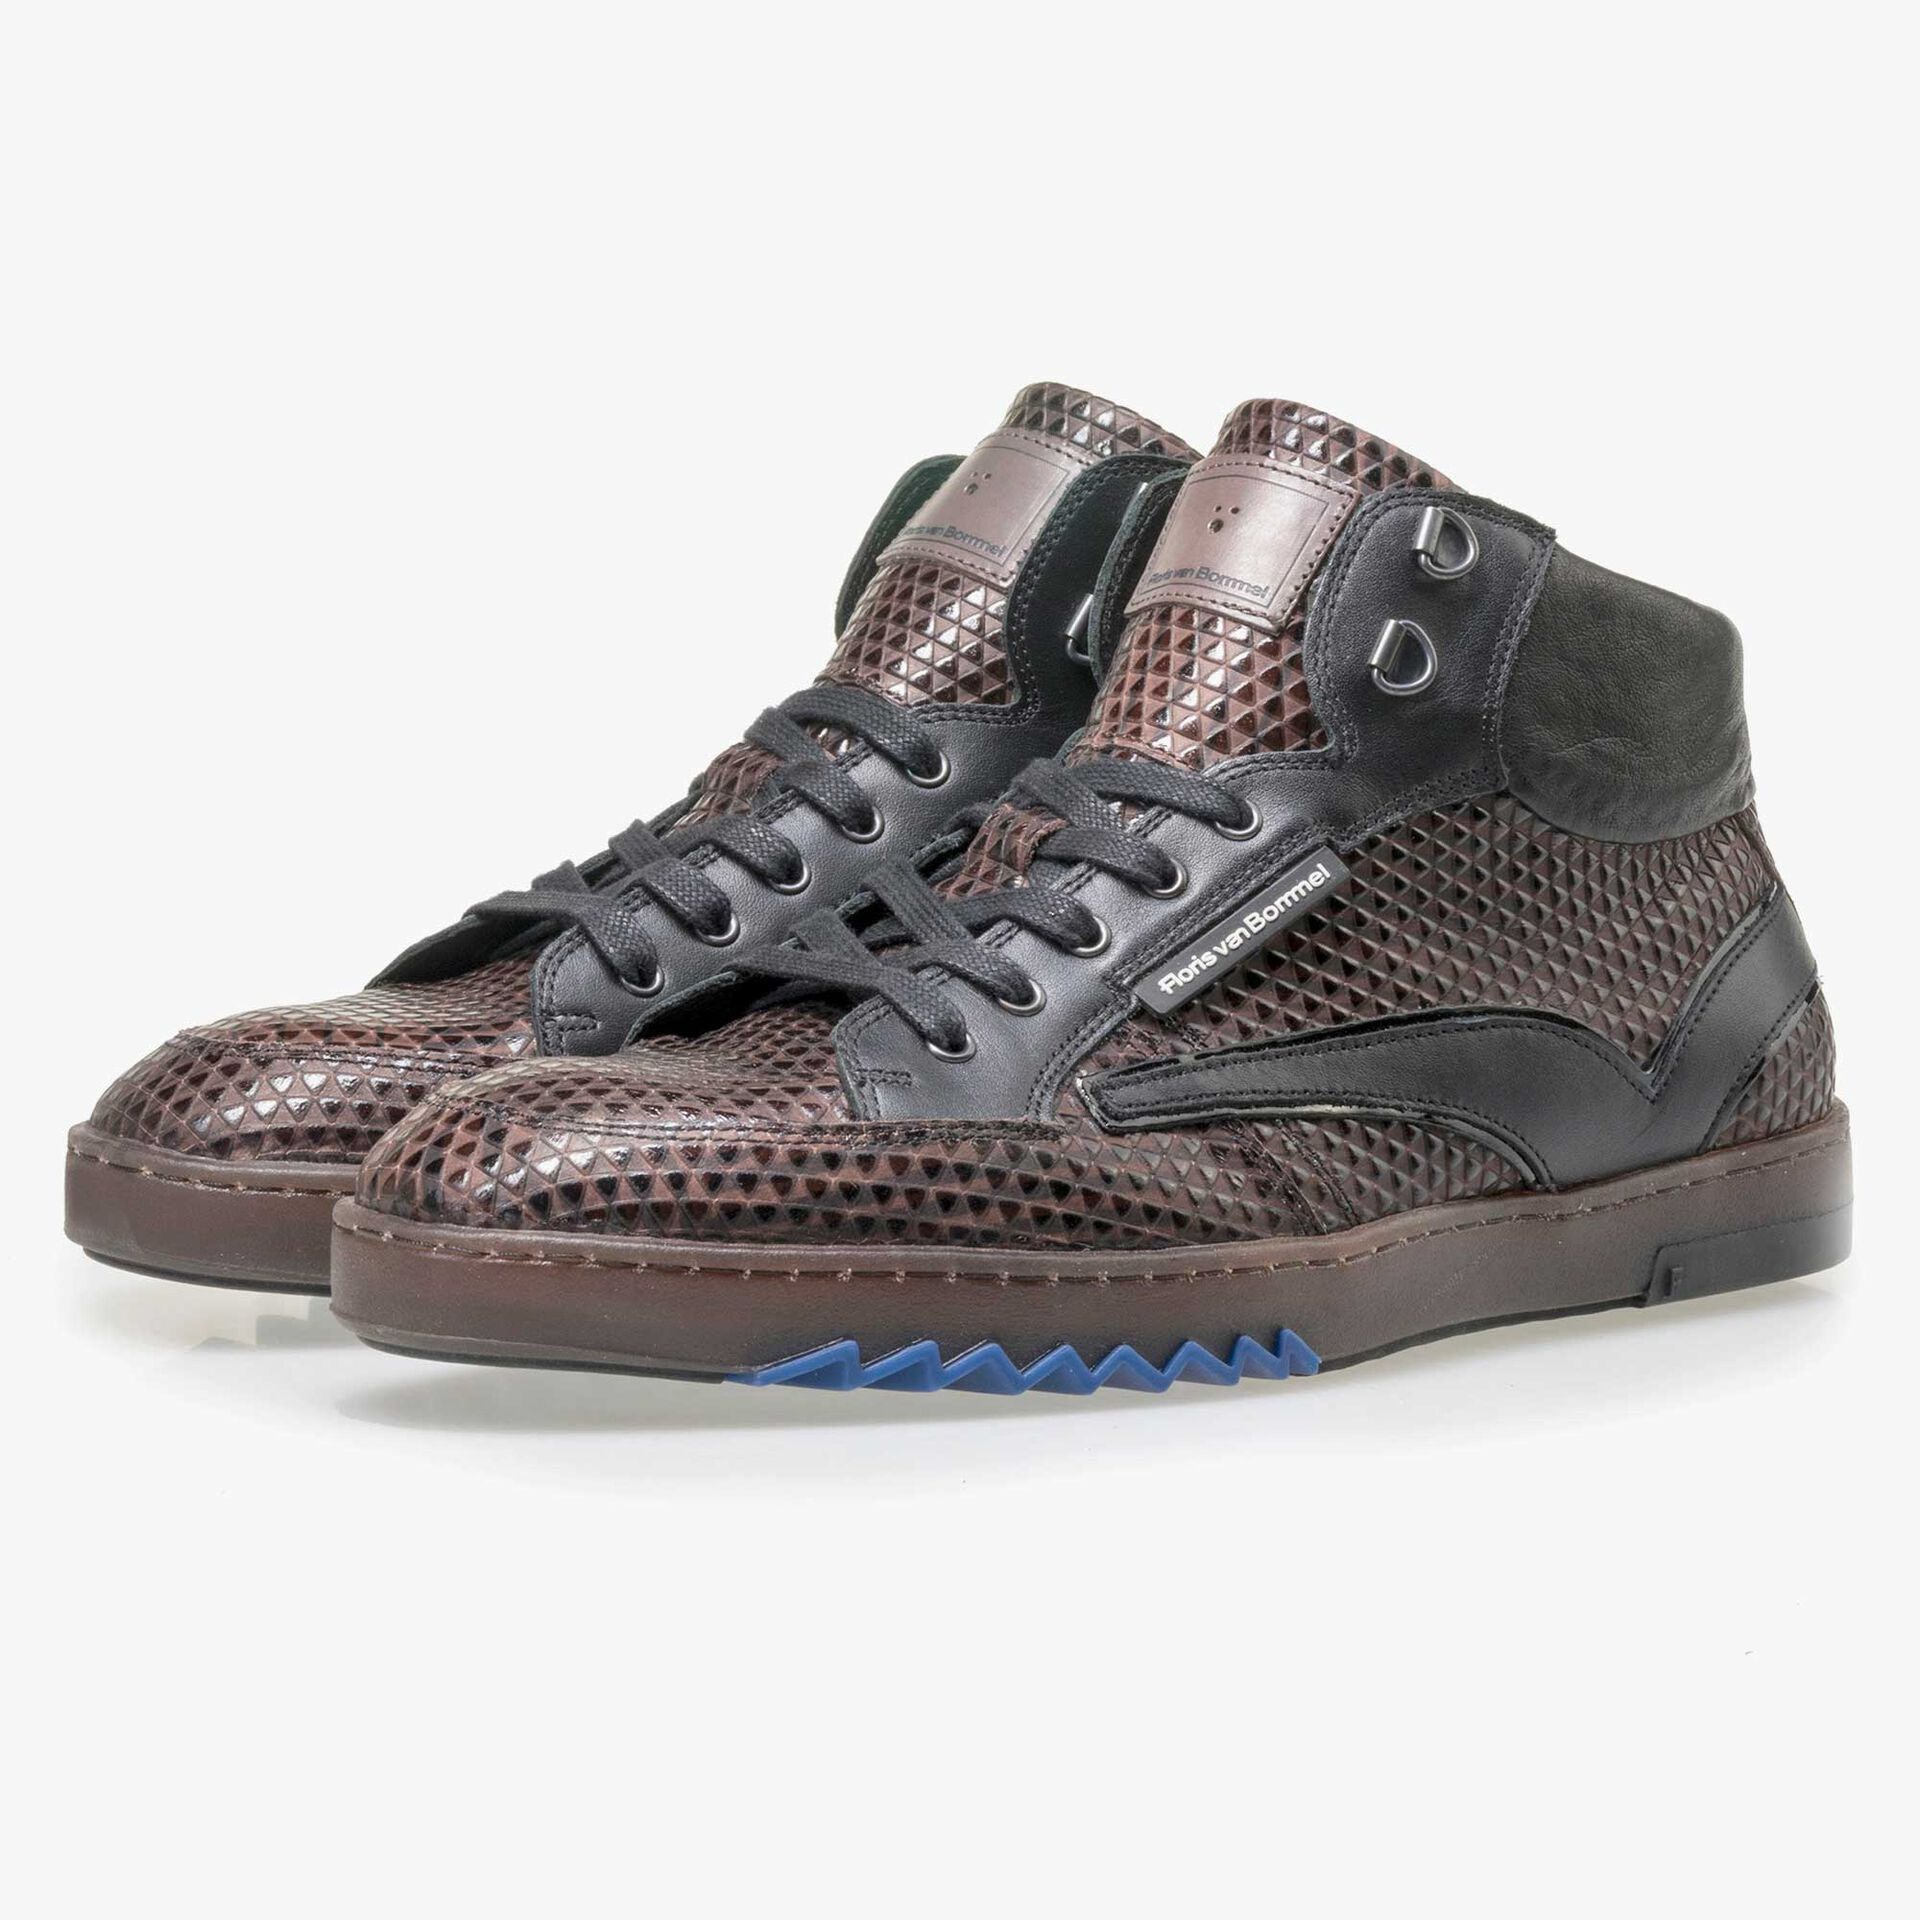 Floris van Bommel men's mid-high, brown sneaker finished with a triangular print